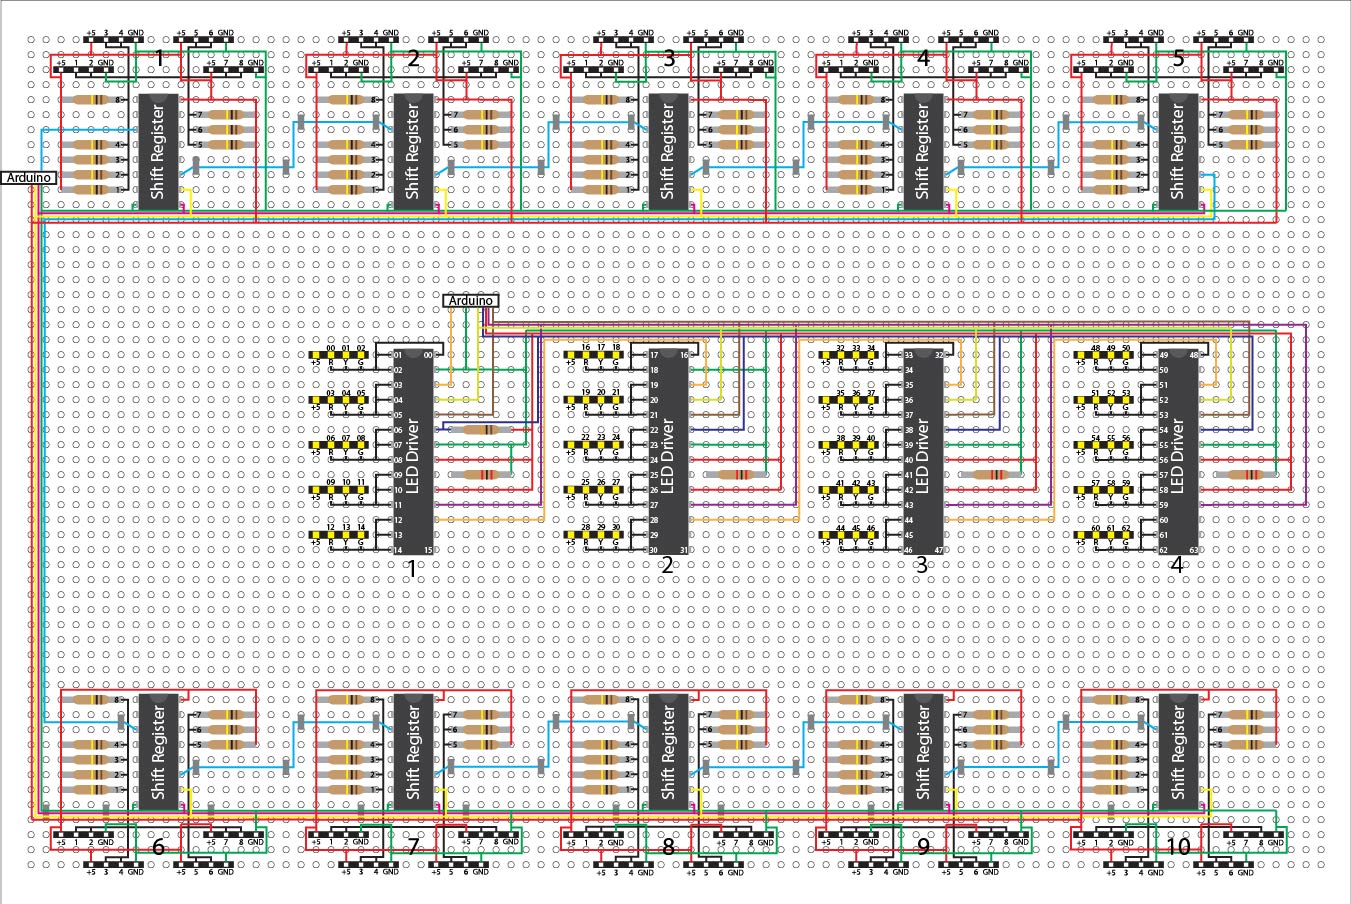 railroad signal wiring diagram schematic Wiring Diagrams And – Model Train Wiring Diagrams